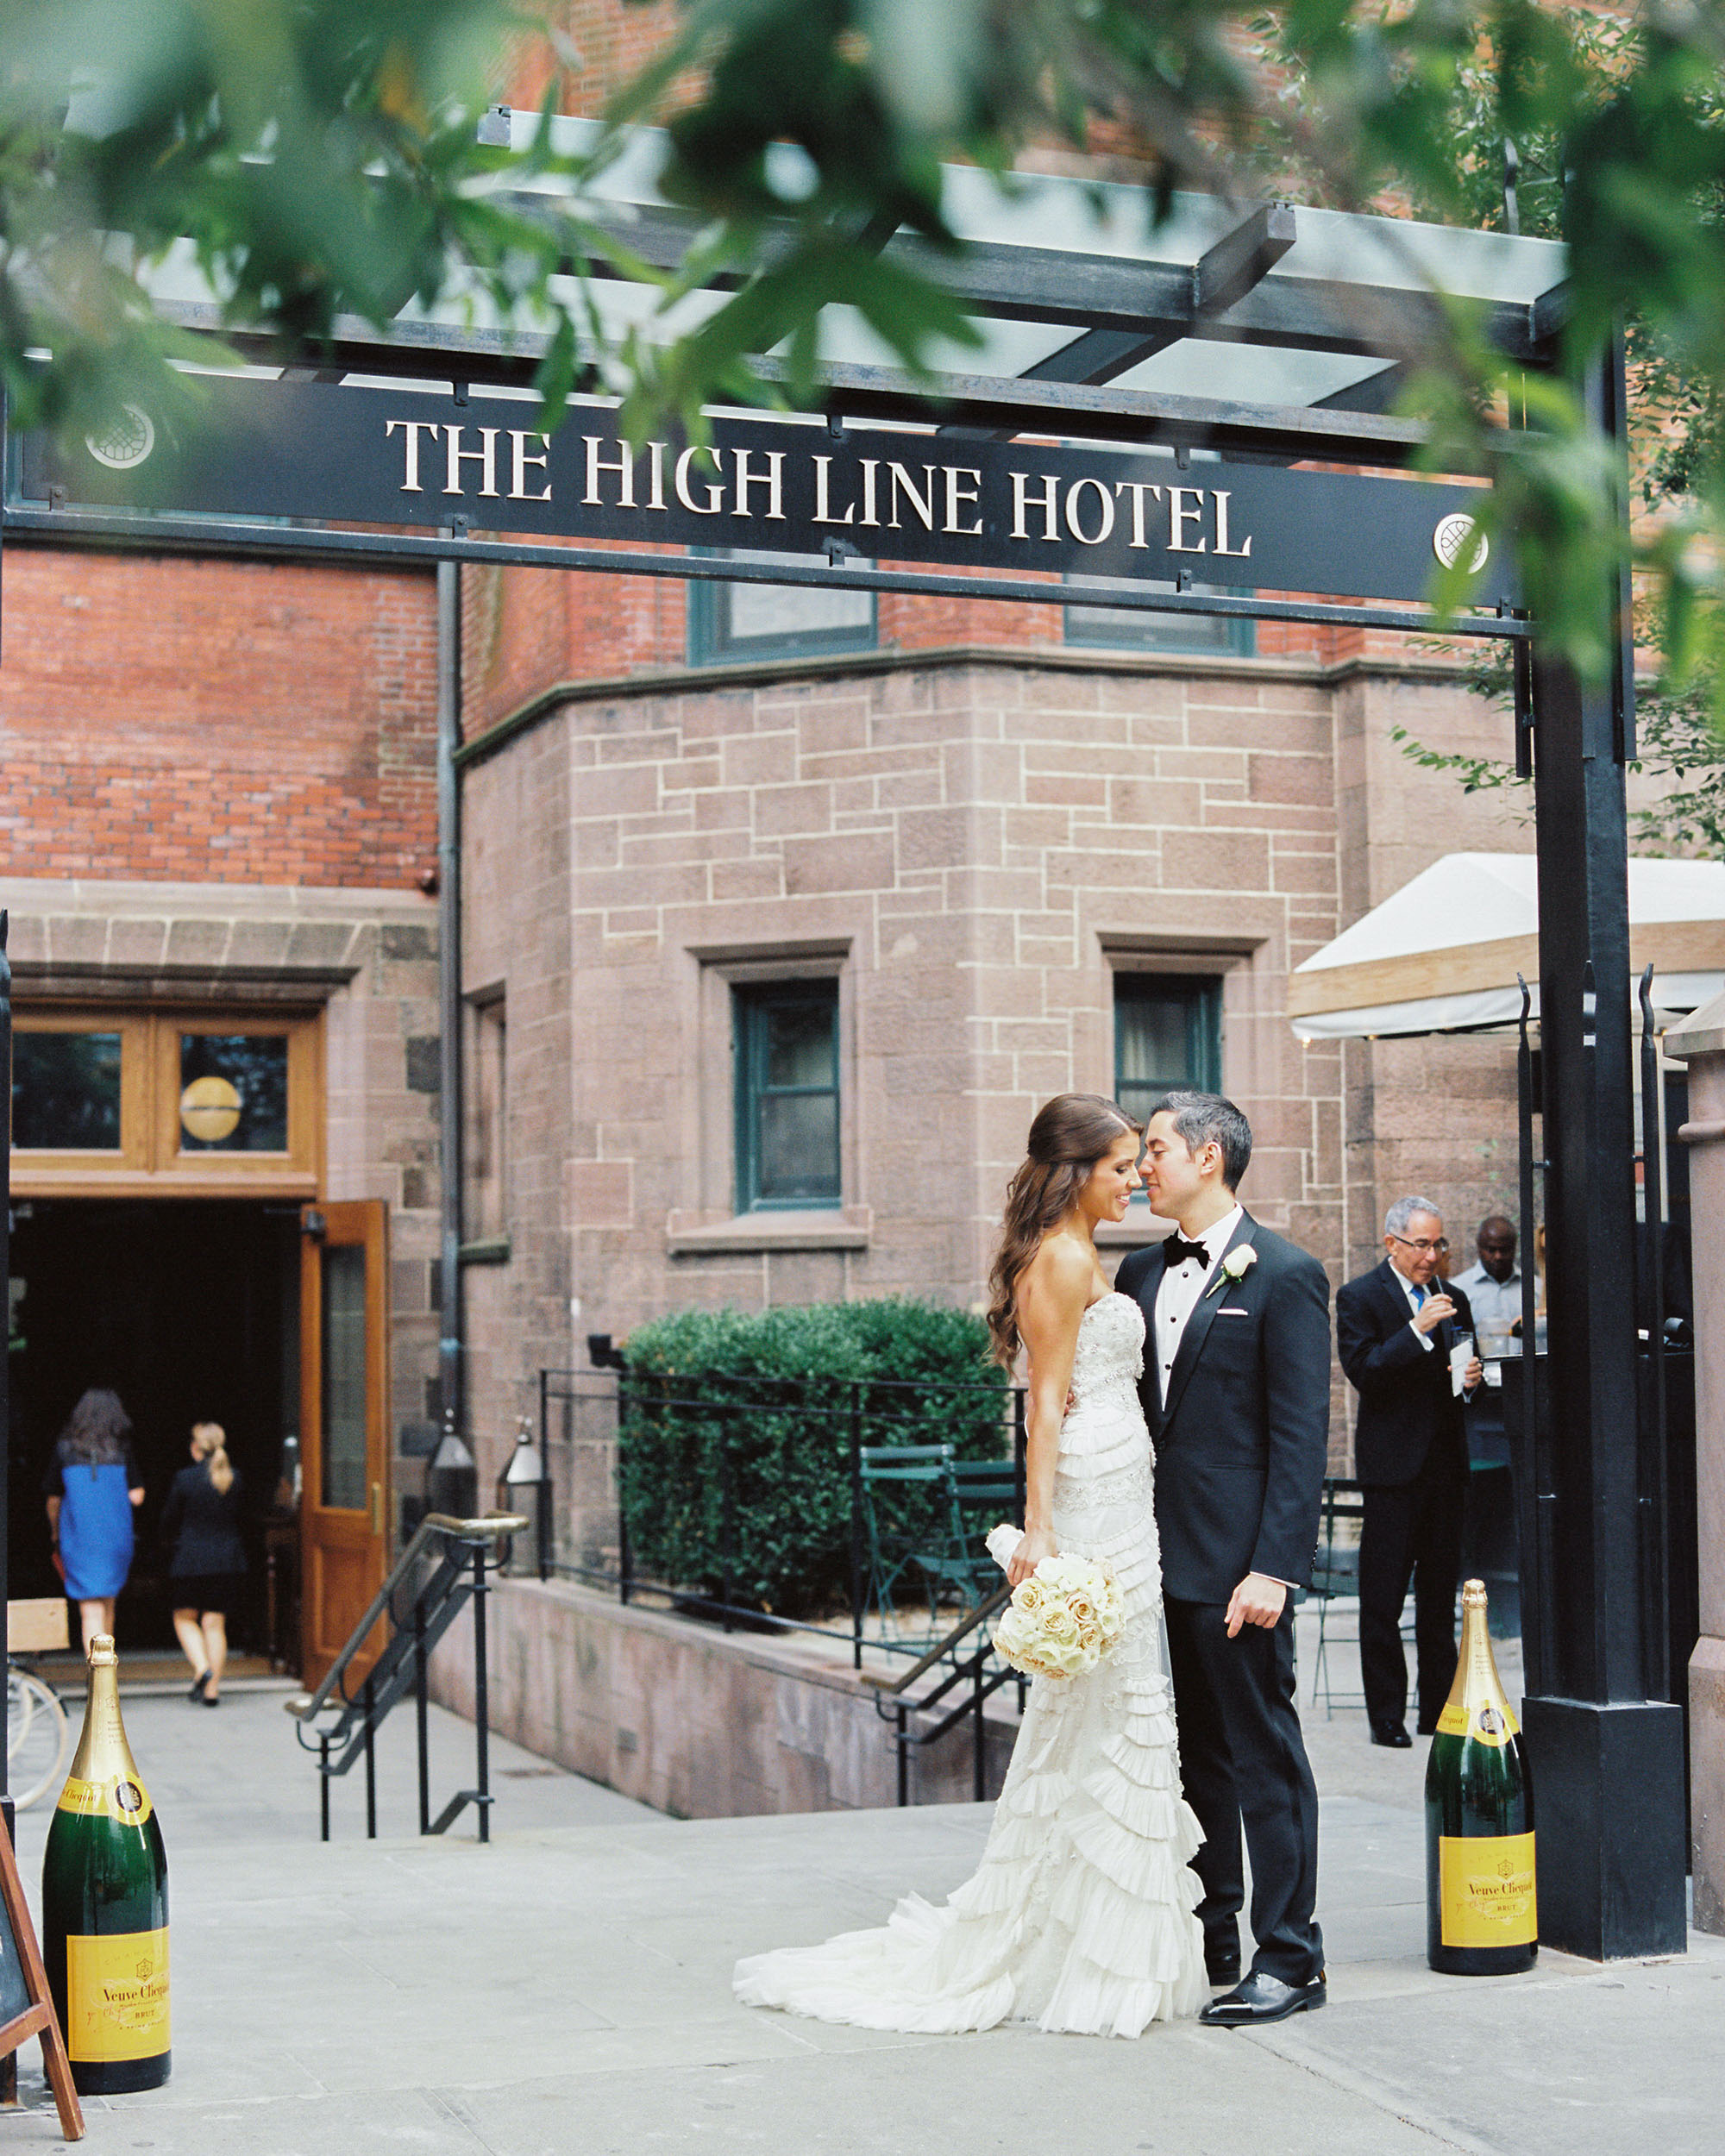 Highline Hotel Wedding Photographer 22 - Highline Hotel